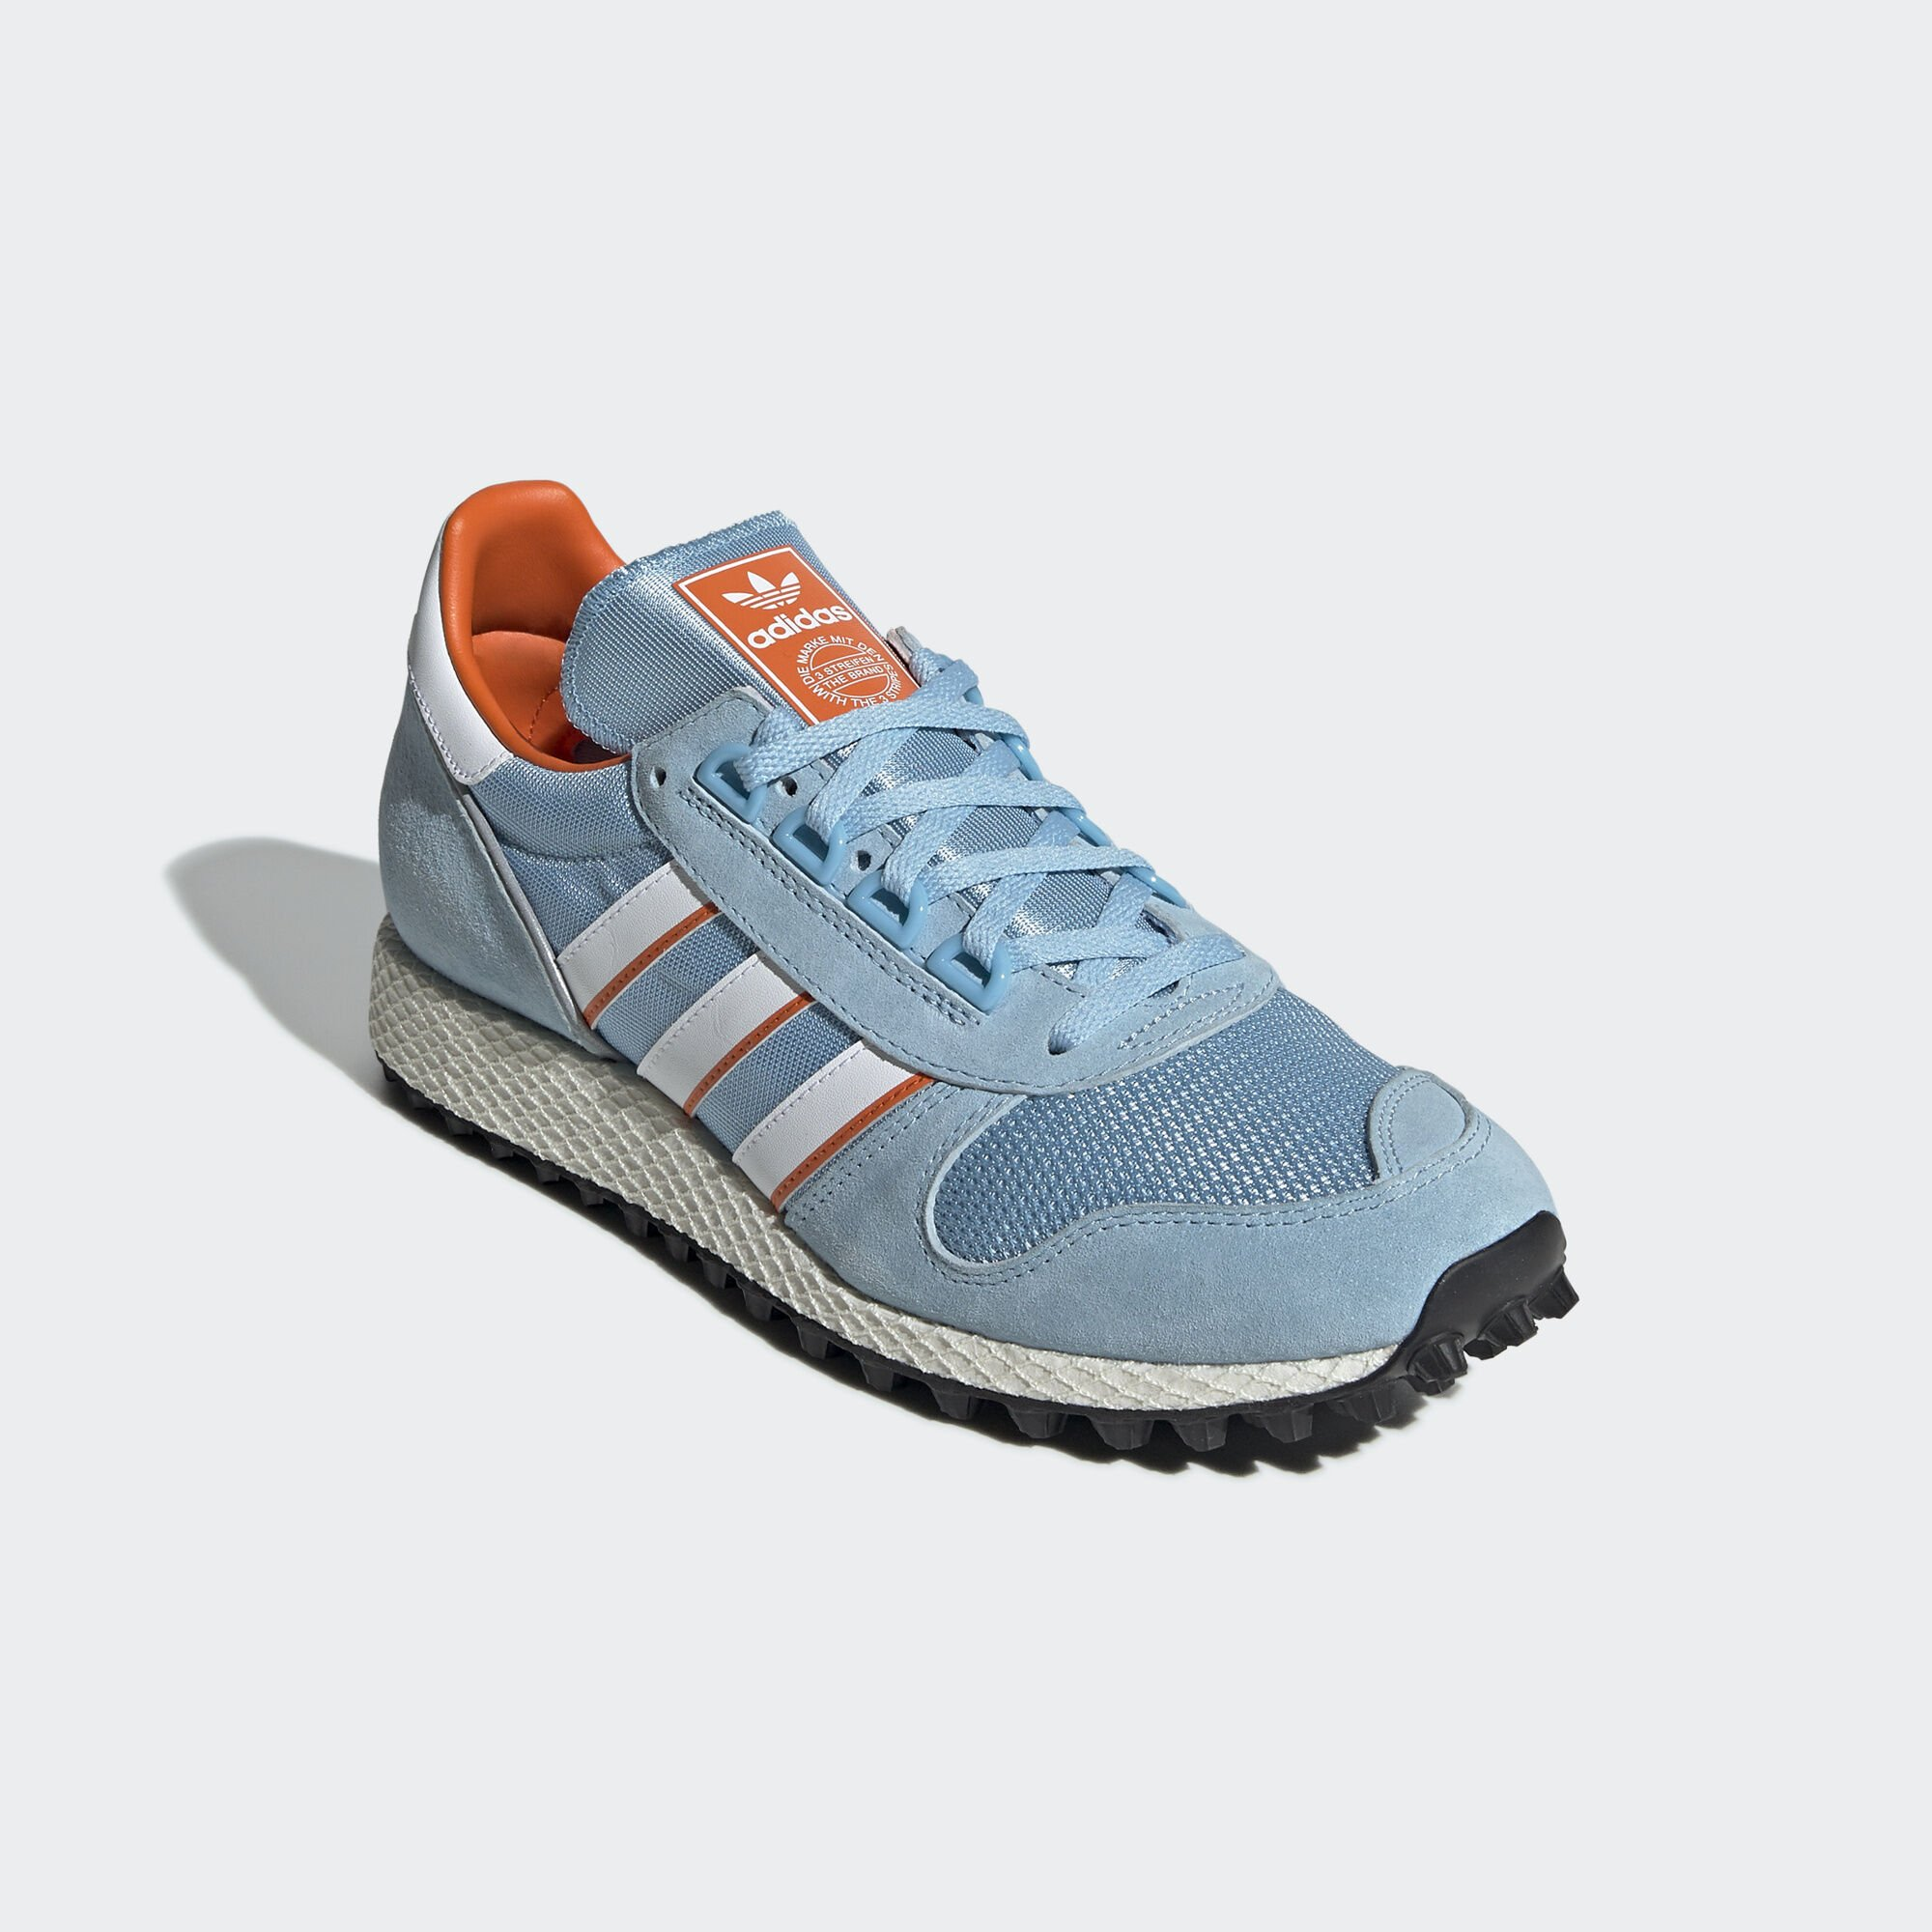 adidas Silverbirch Spzl Clear Blue (BD7921)